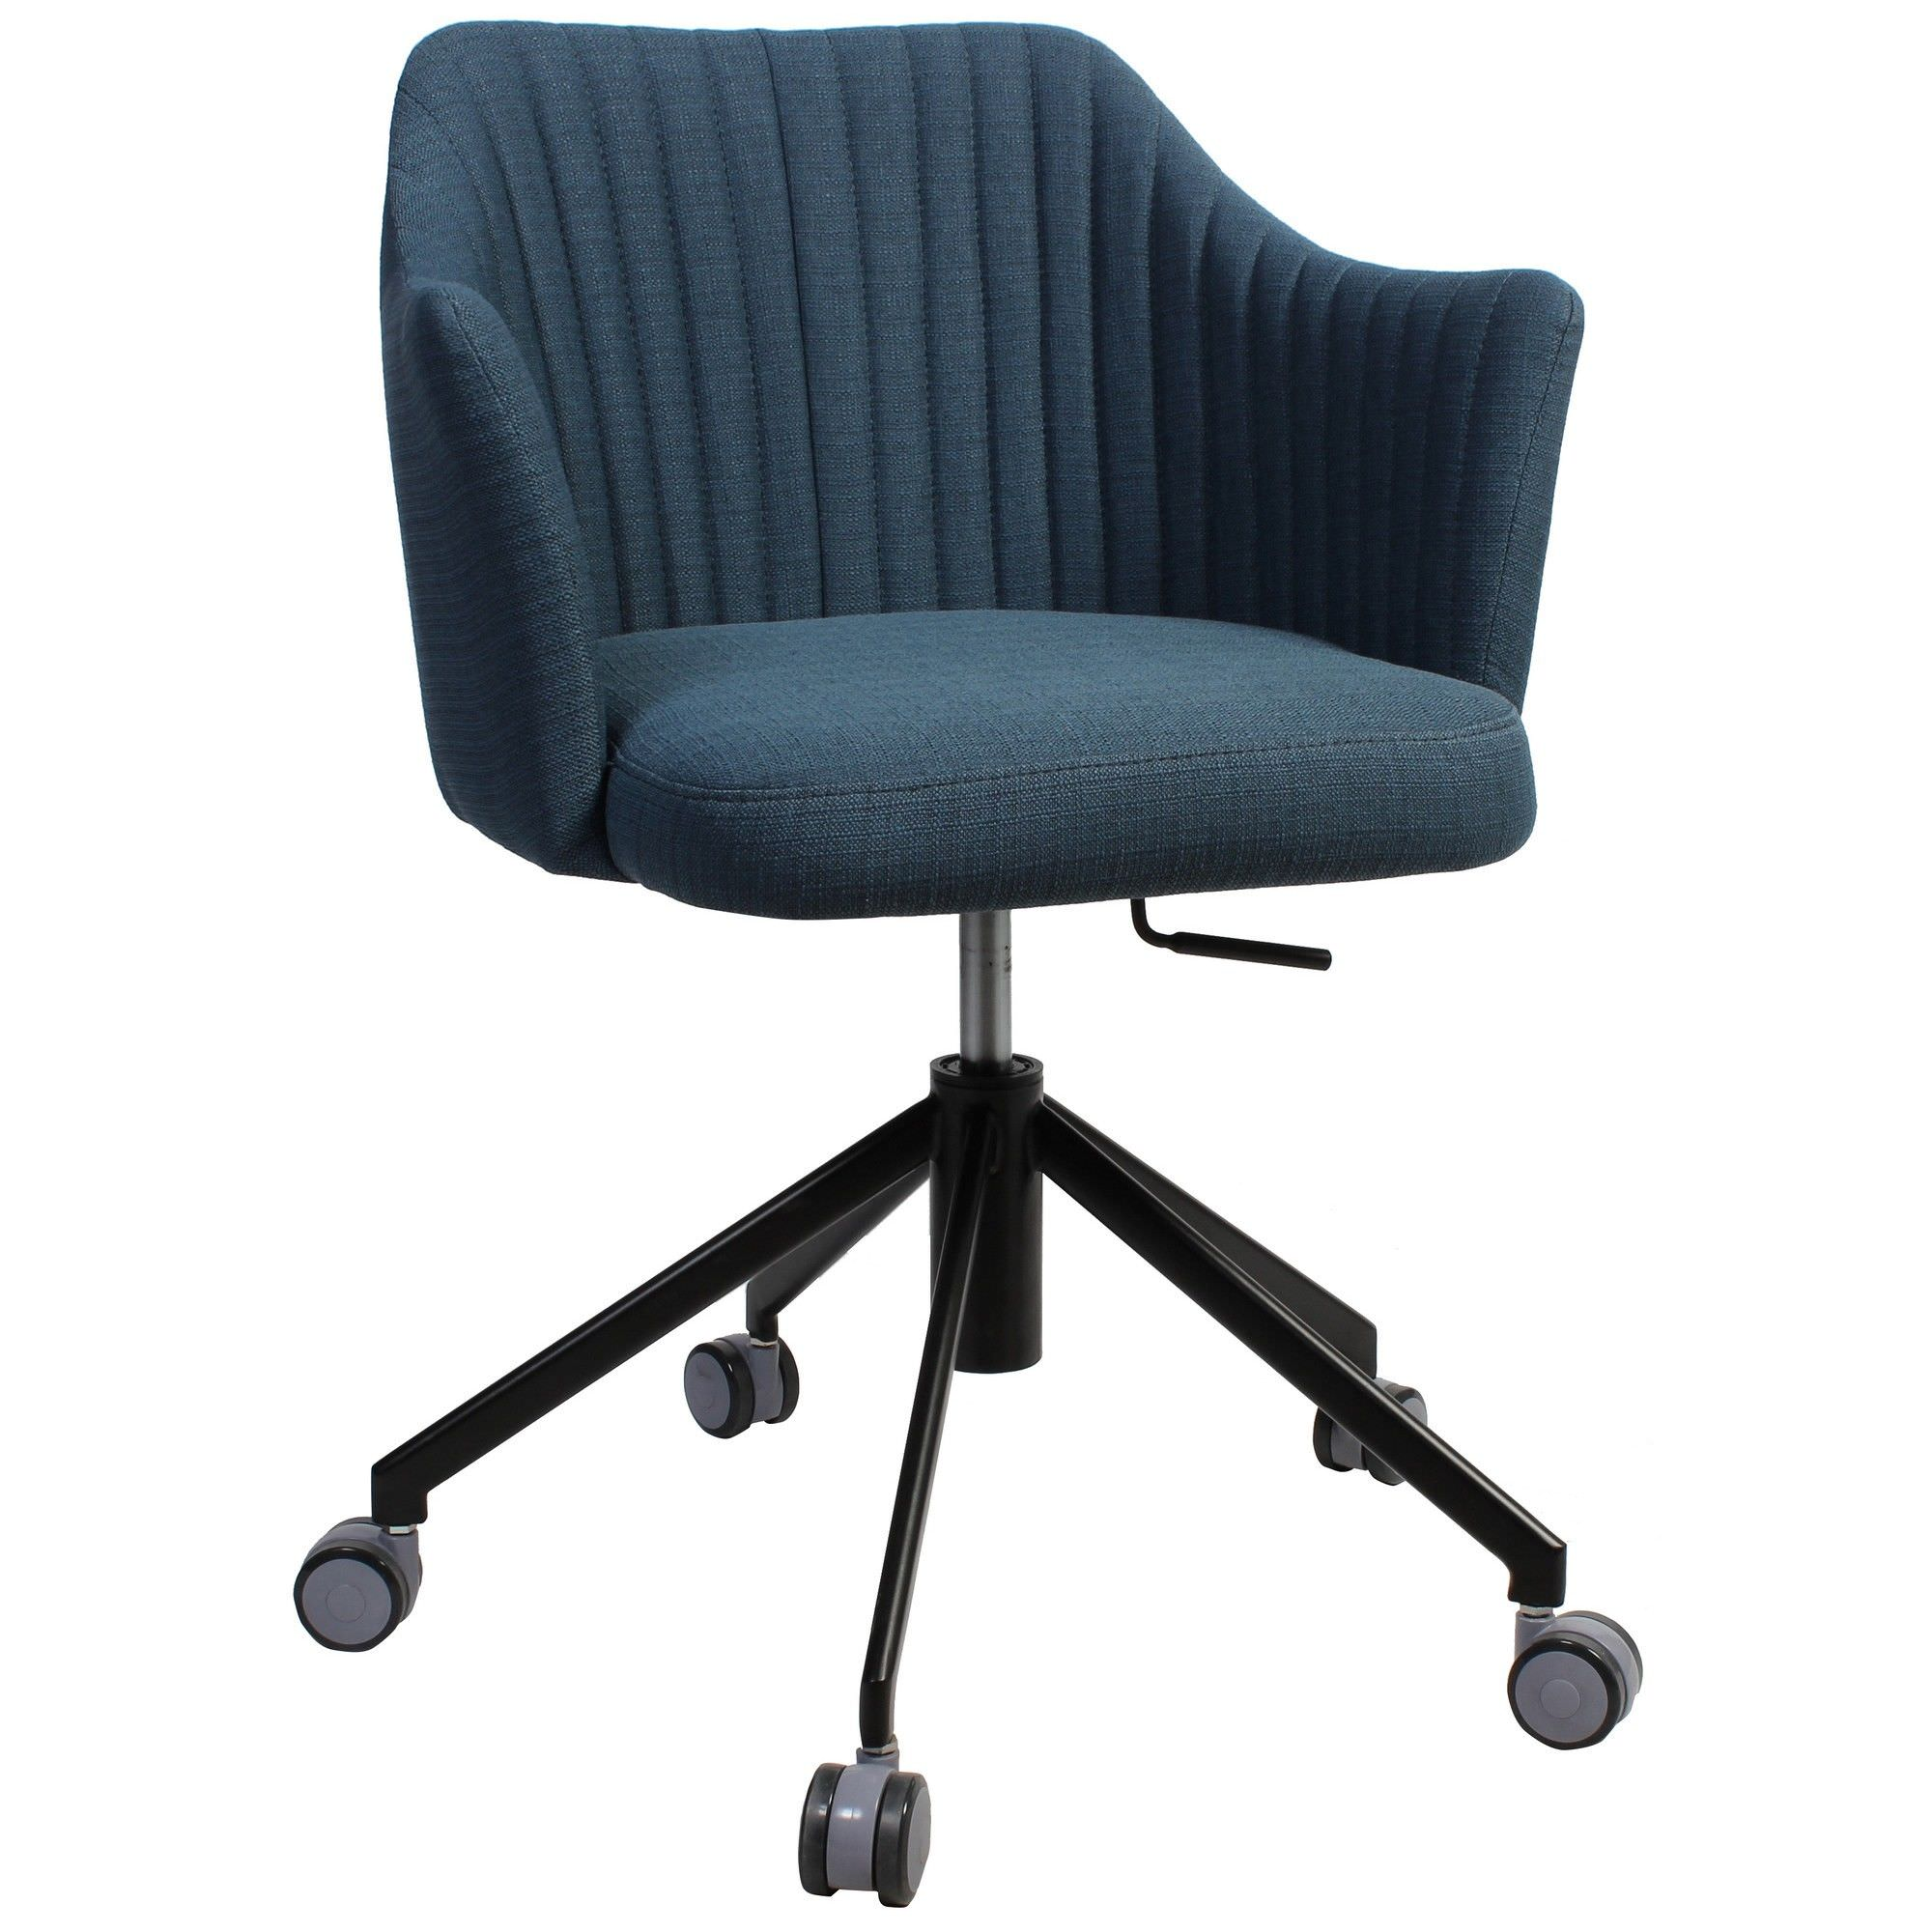 Coogee Commercial Grade Gas Lift Fabric Office Armchair, Blue / Black